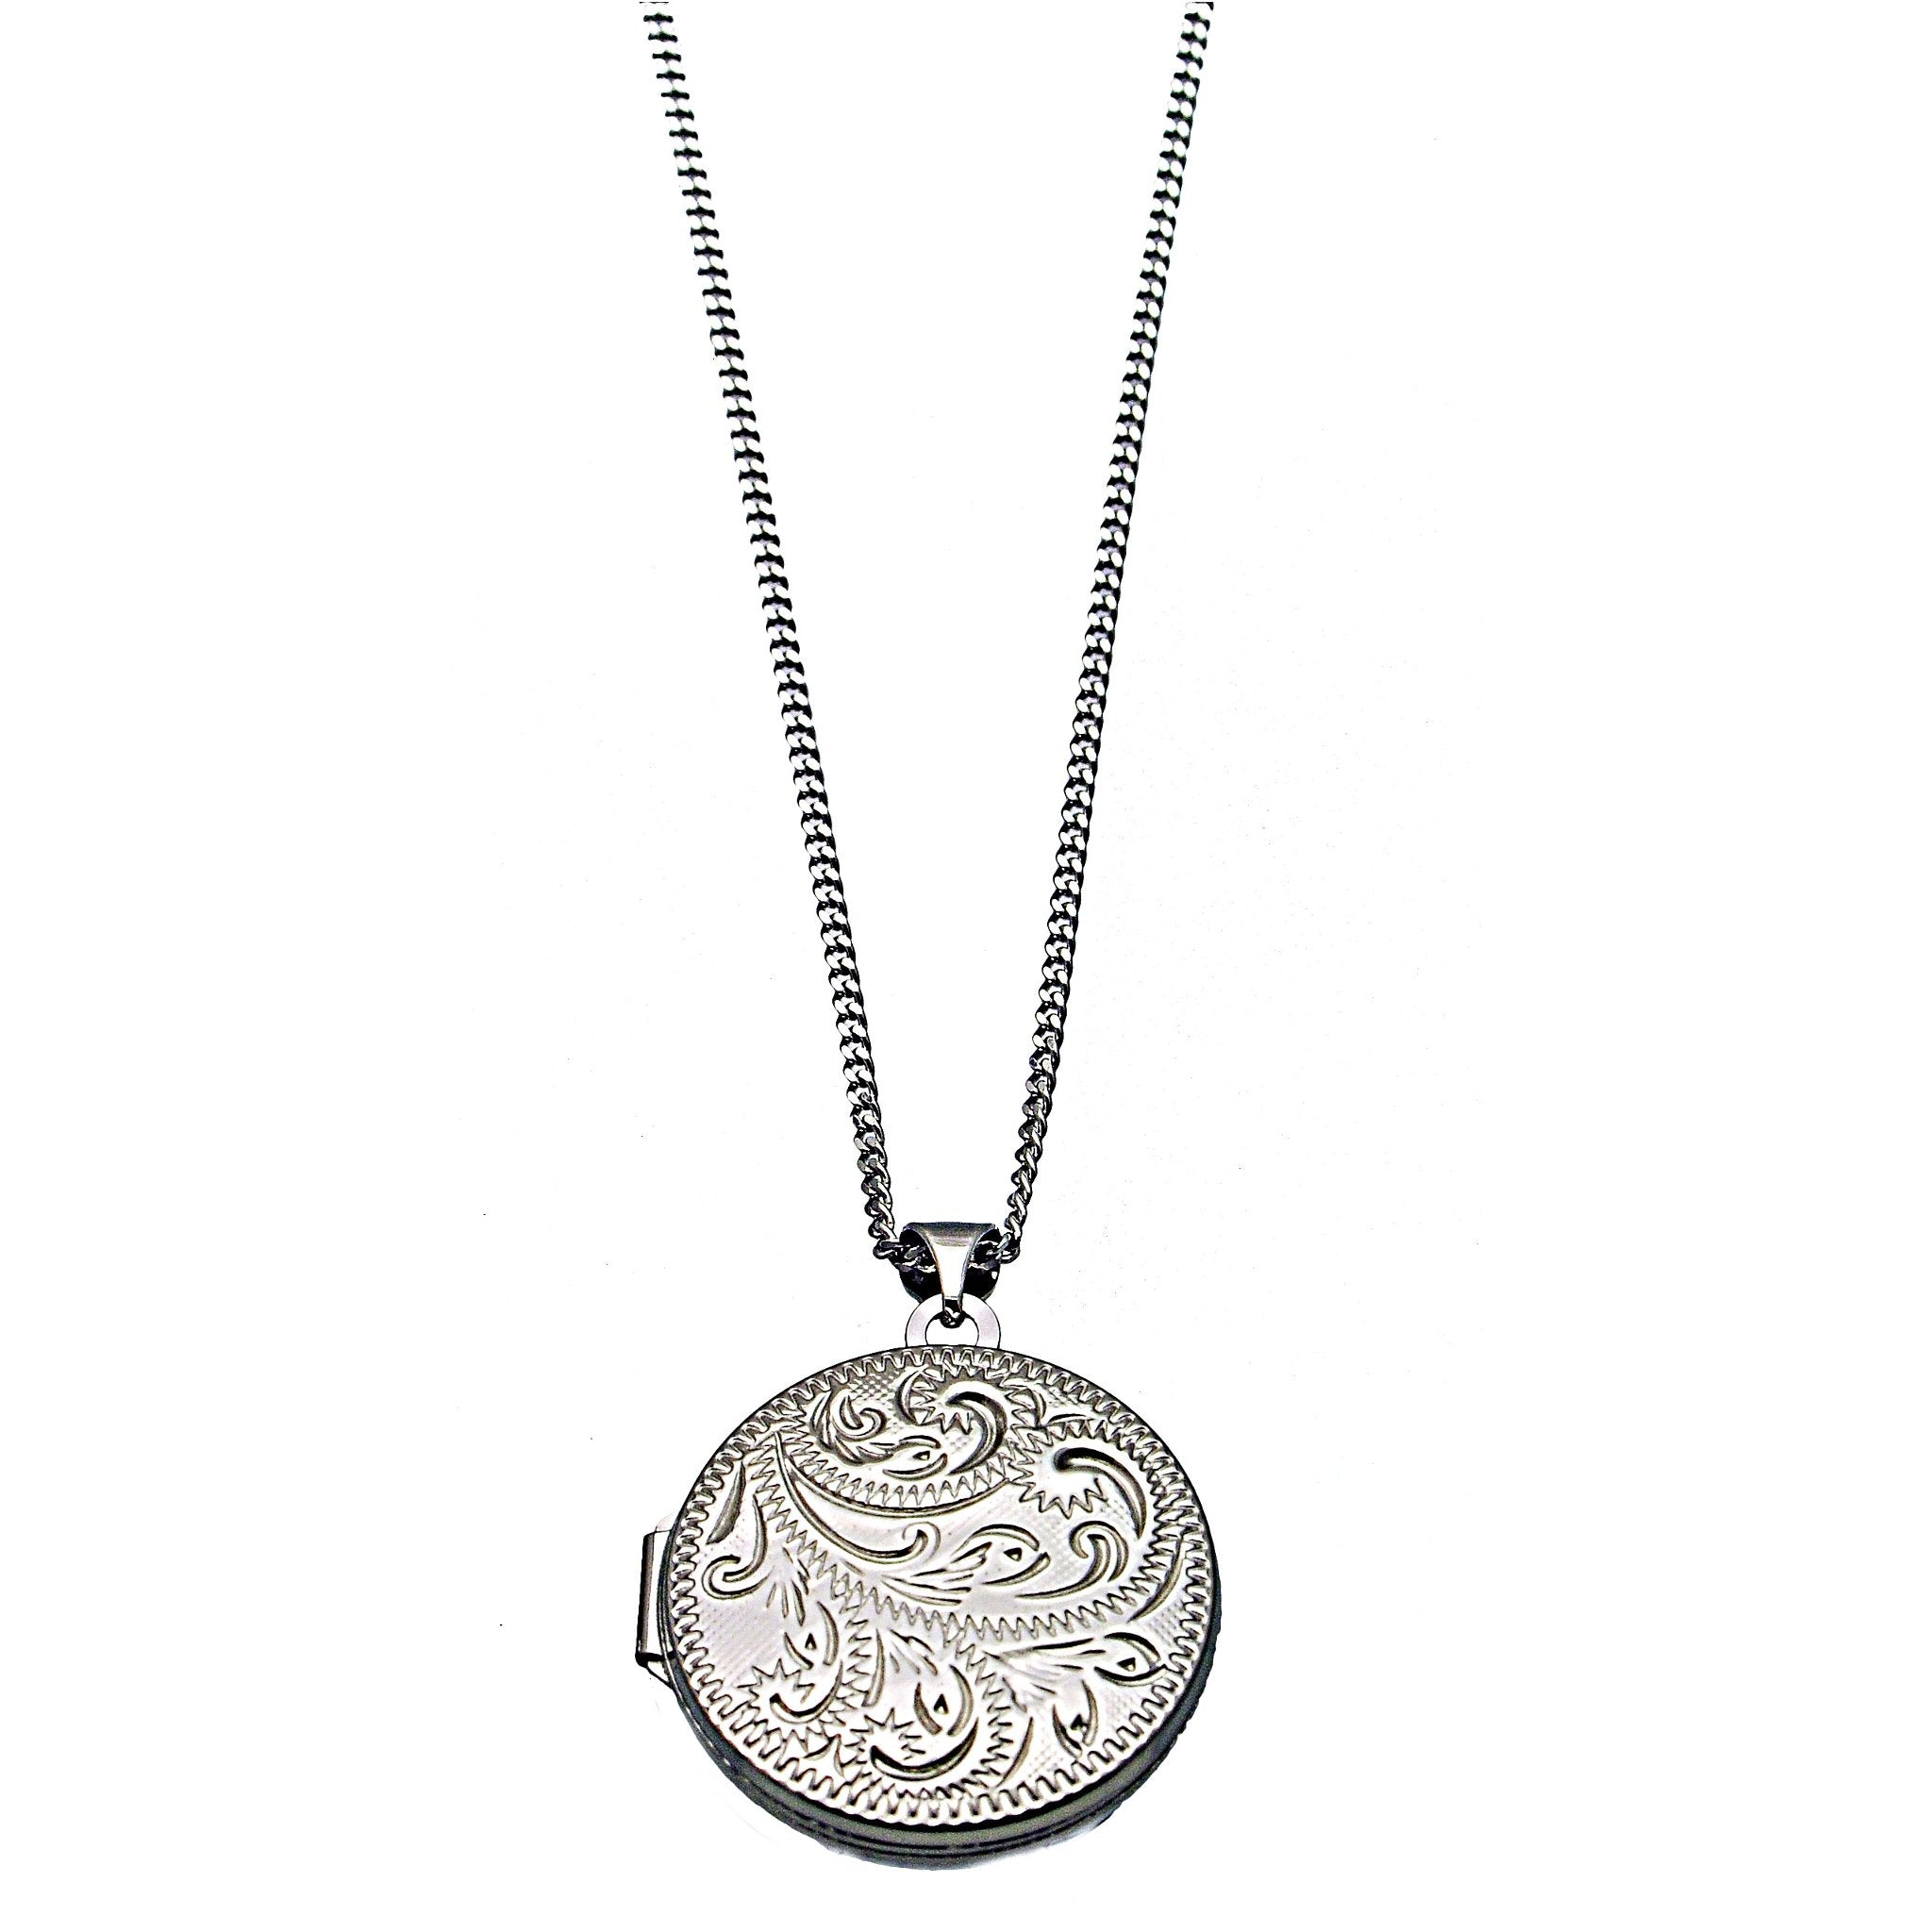 The Heirloom Locket Necklace